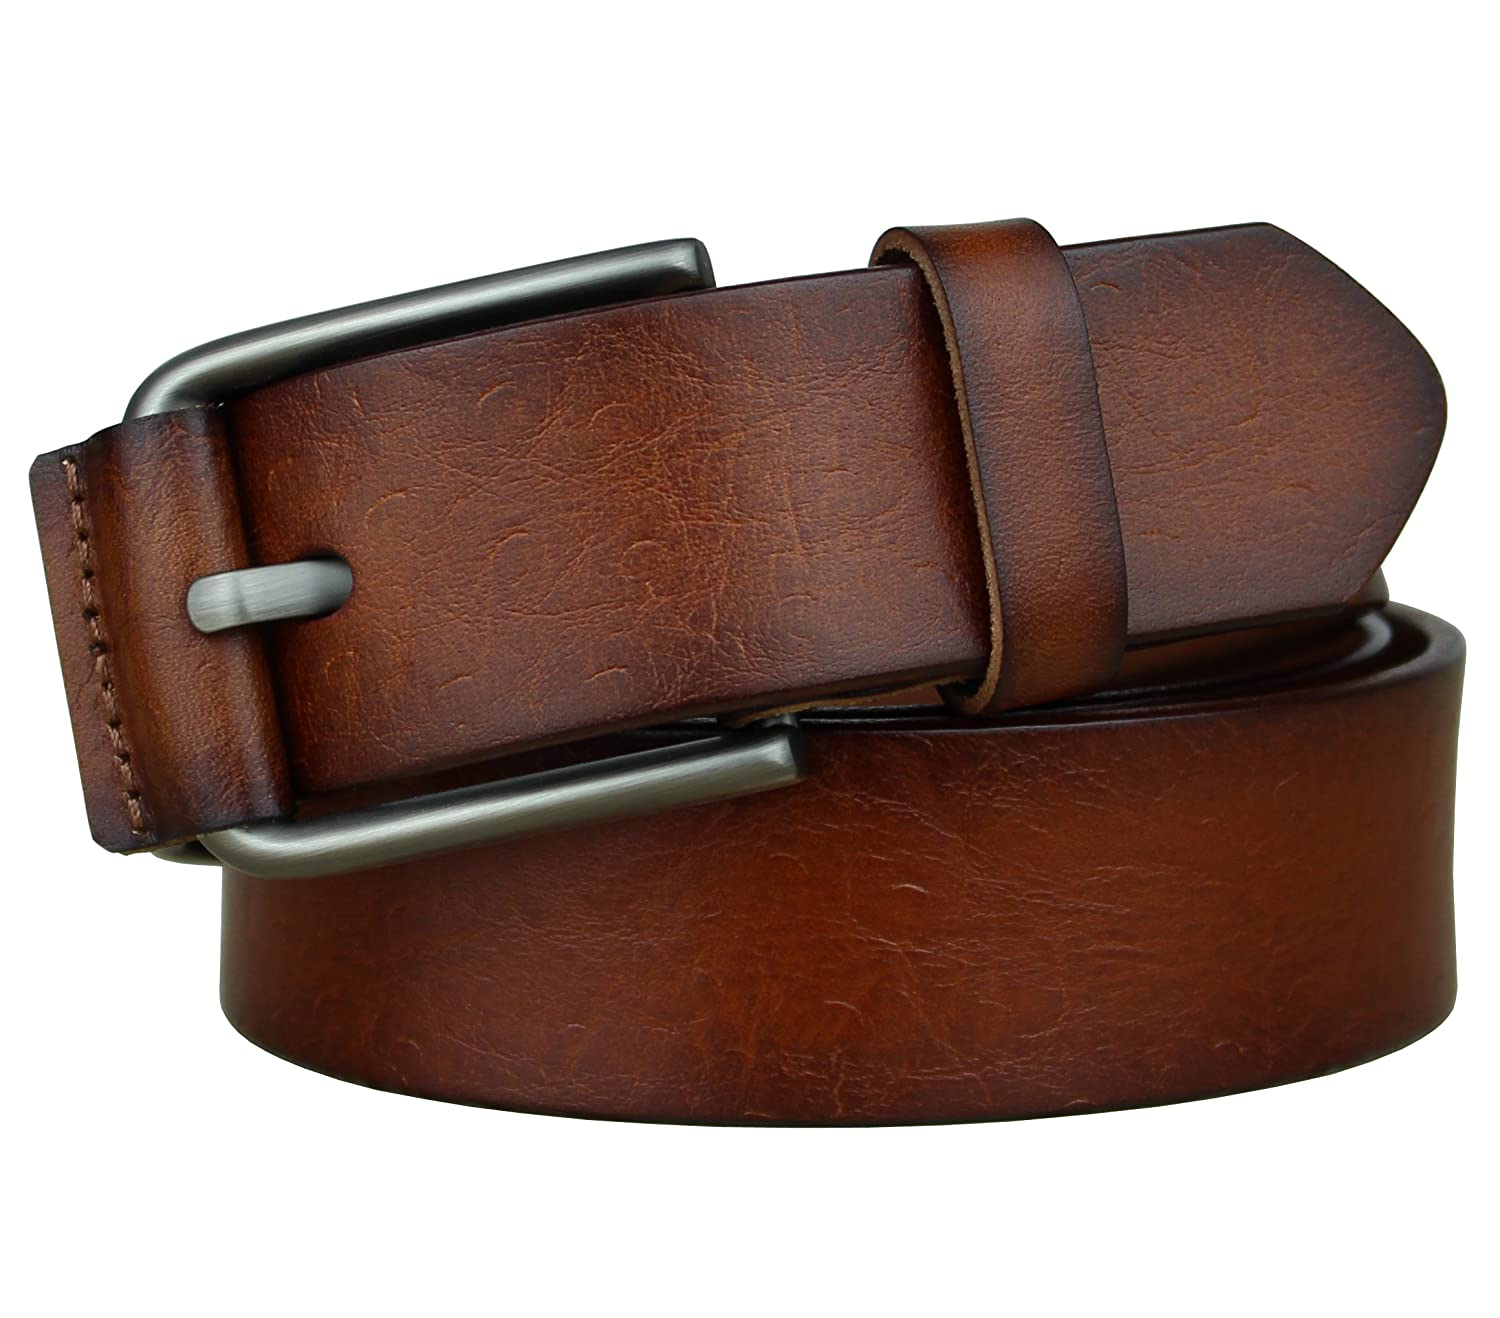 1960s Men's Clothing, 70s Men's Fashion Bullko Mens Casual Genuine Leather Belt $28.99 AT vintagedancer.com